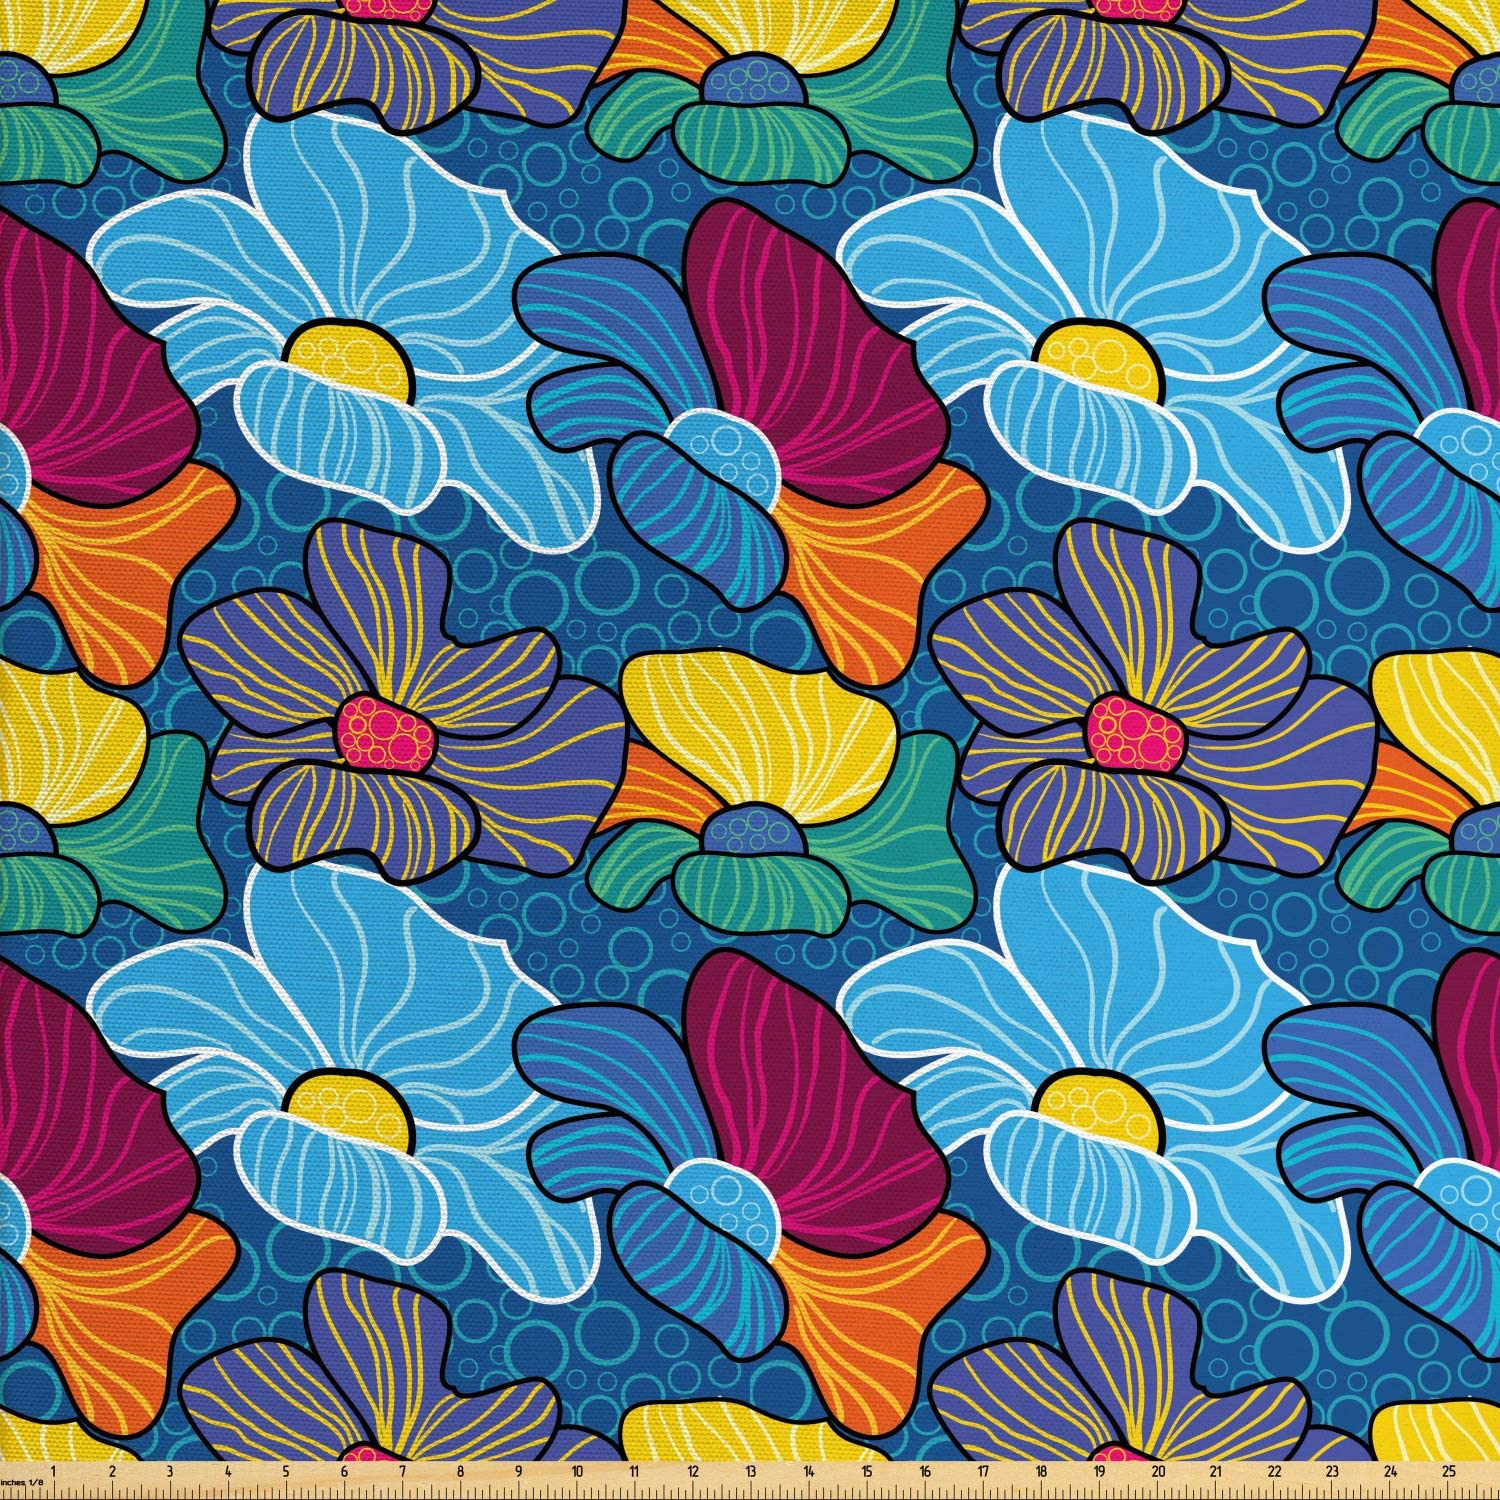 Lunarable Paint Fabric by The Yard, Vibrant Textured Large Flower Petals Beauty Essence Ornamental Boho Fashion Motif, Decorative Fabric for Upholstery and Home Accents, 3 Yards, Multicolor